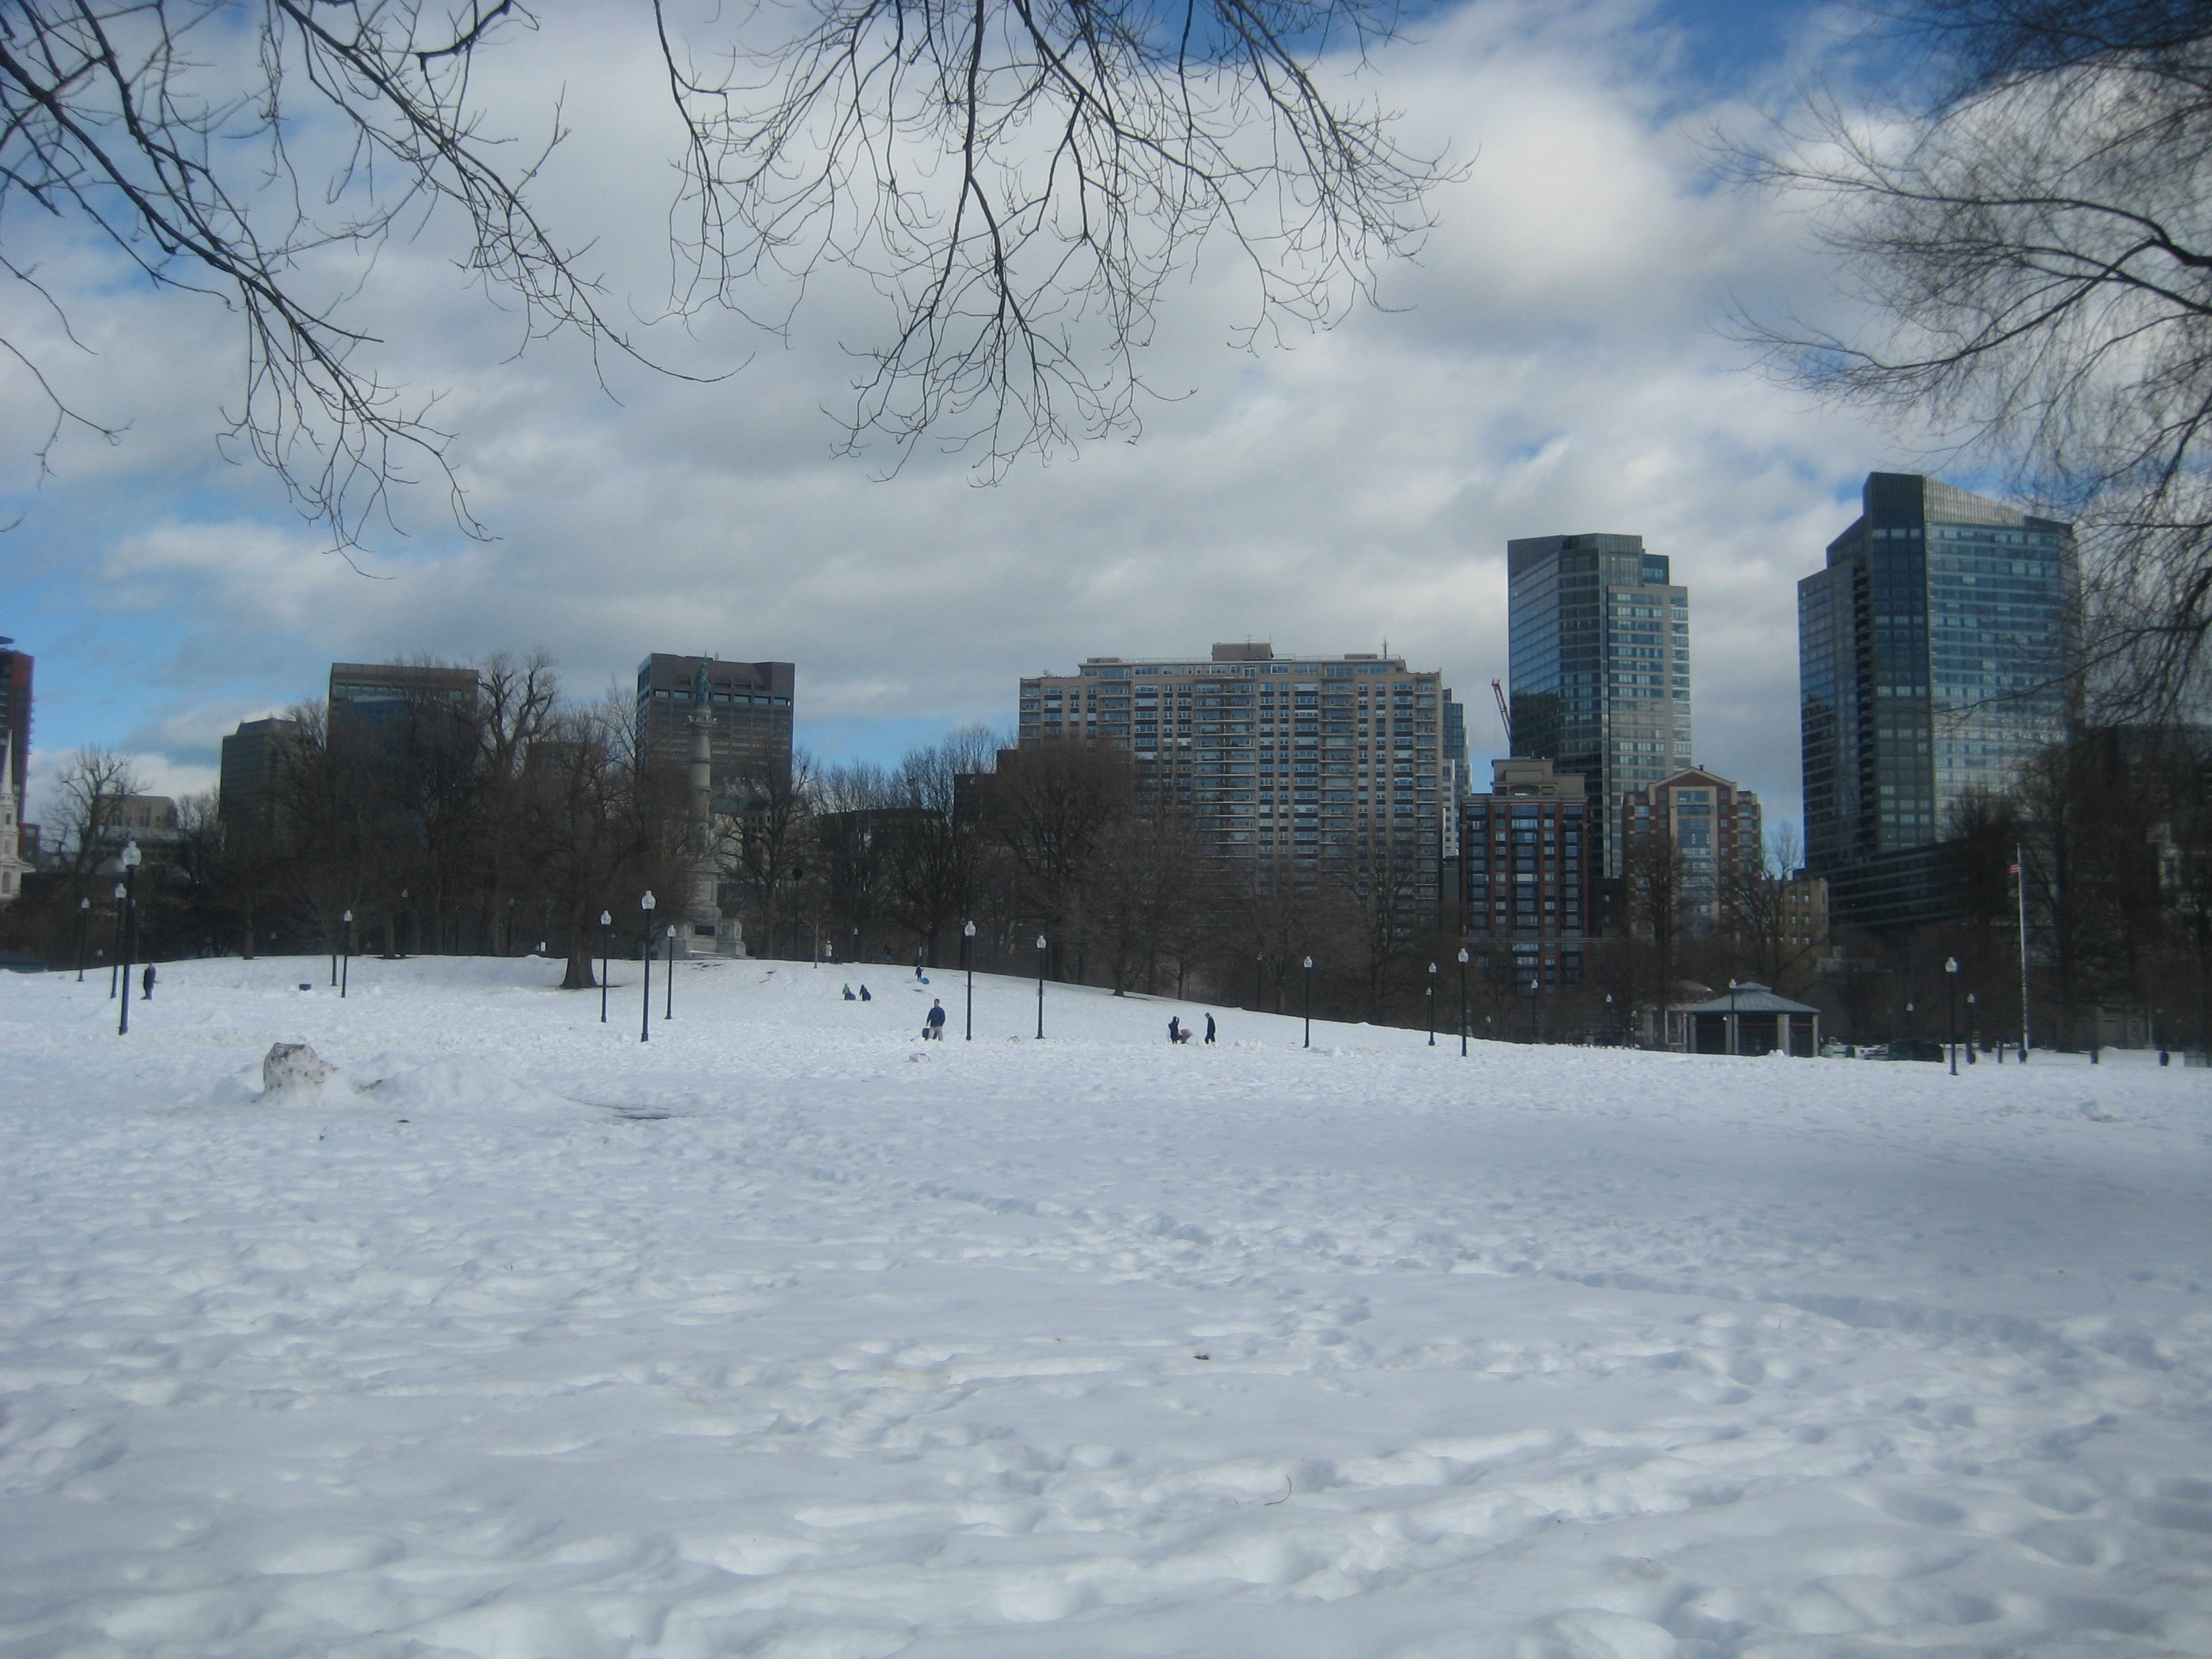 snow boston common winter nemo